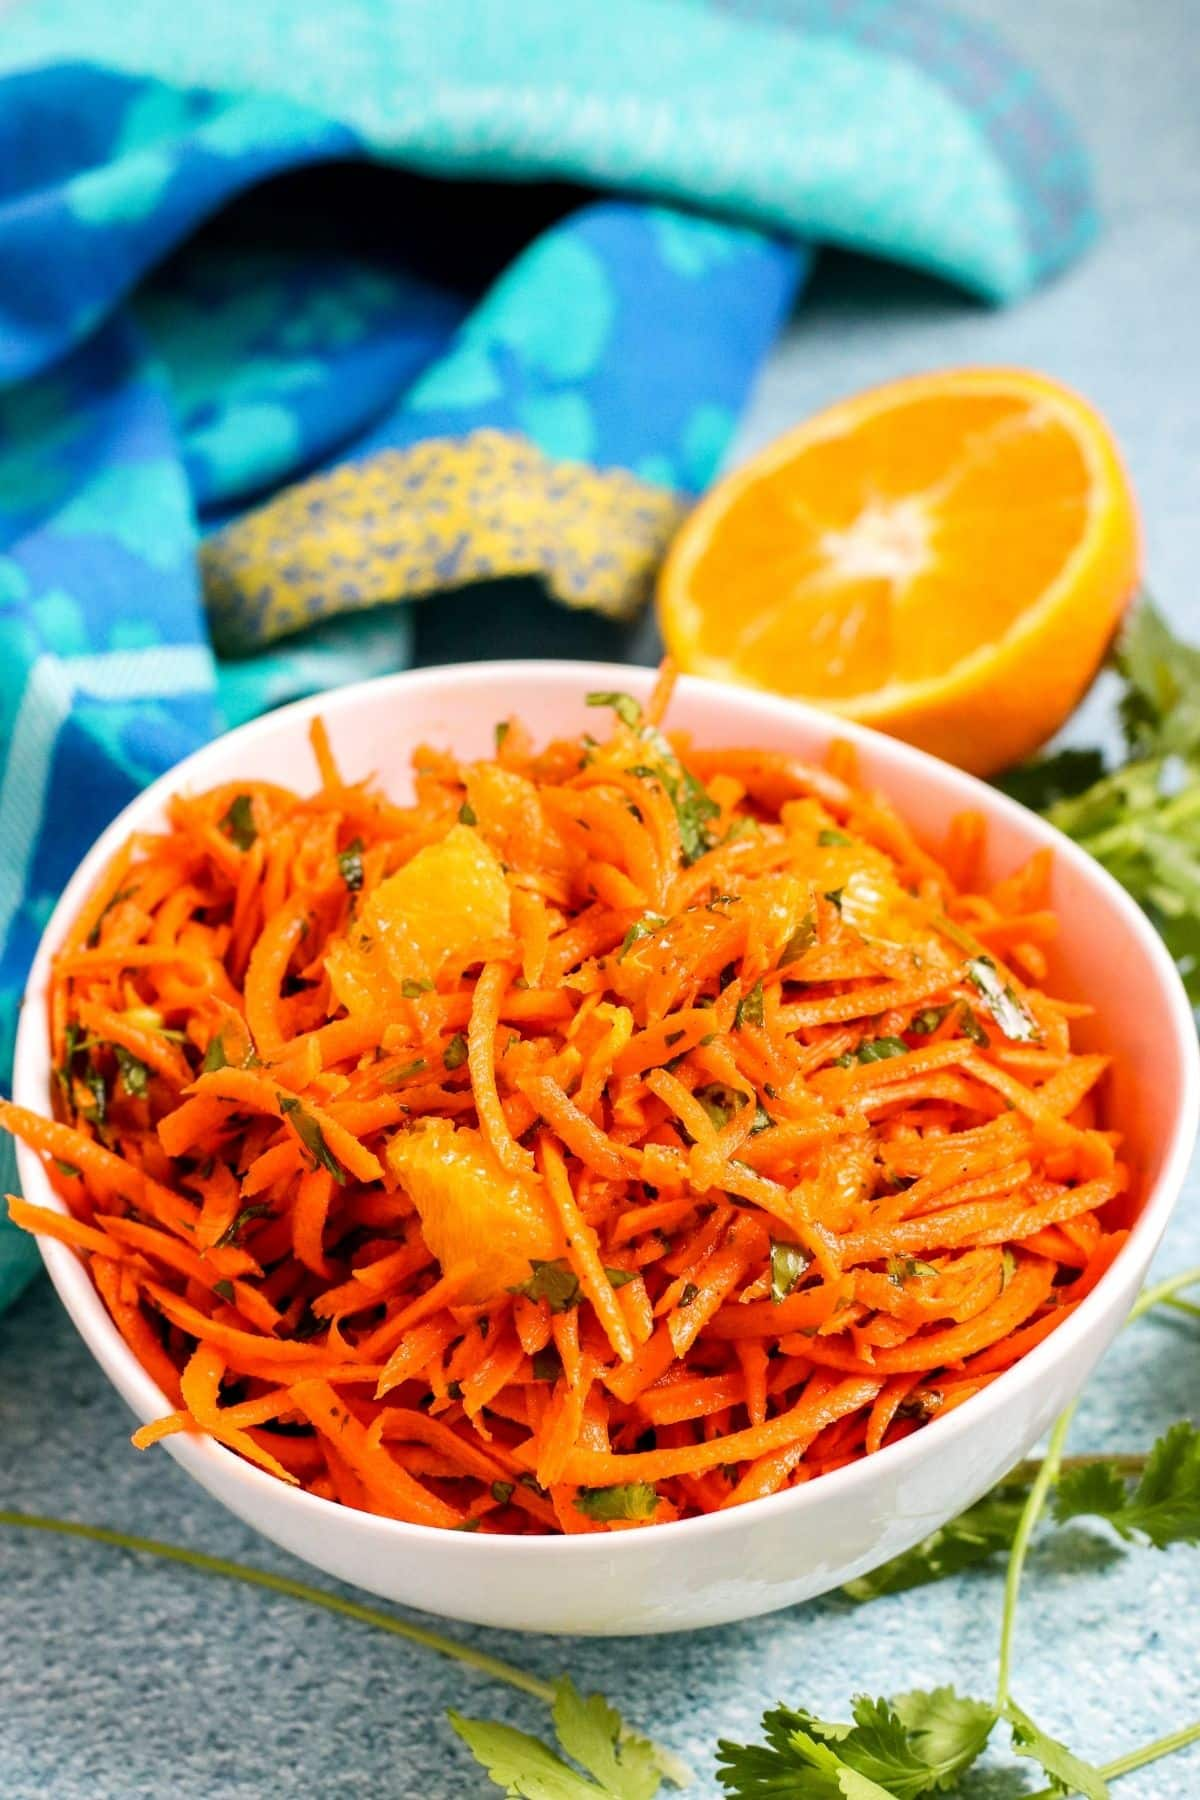 White bowl filled with shredded carrot salad with cut orange in the background